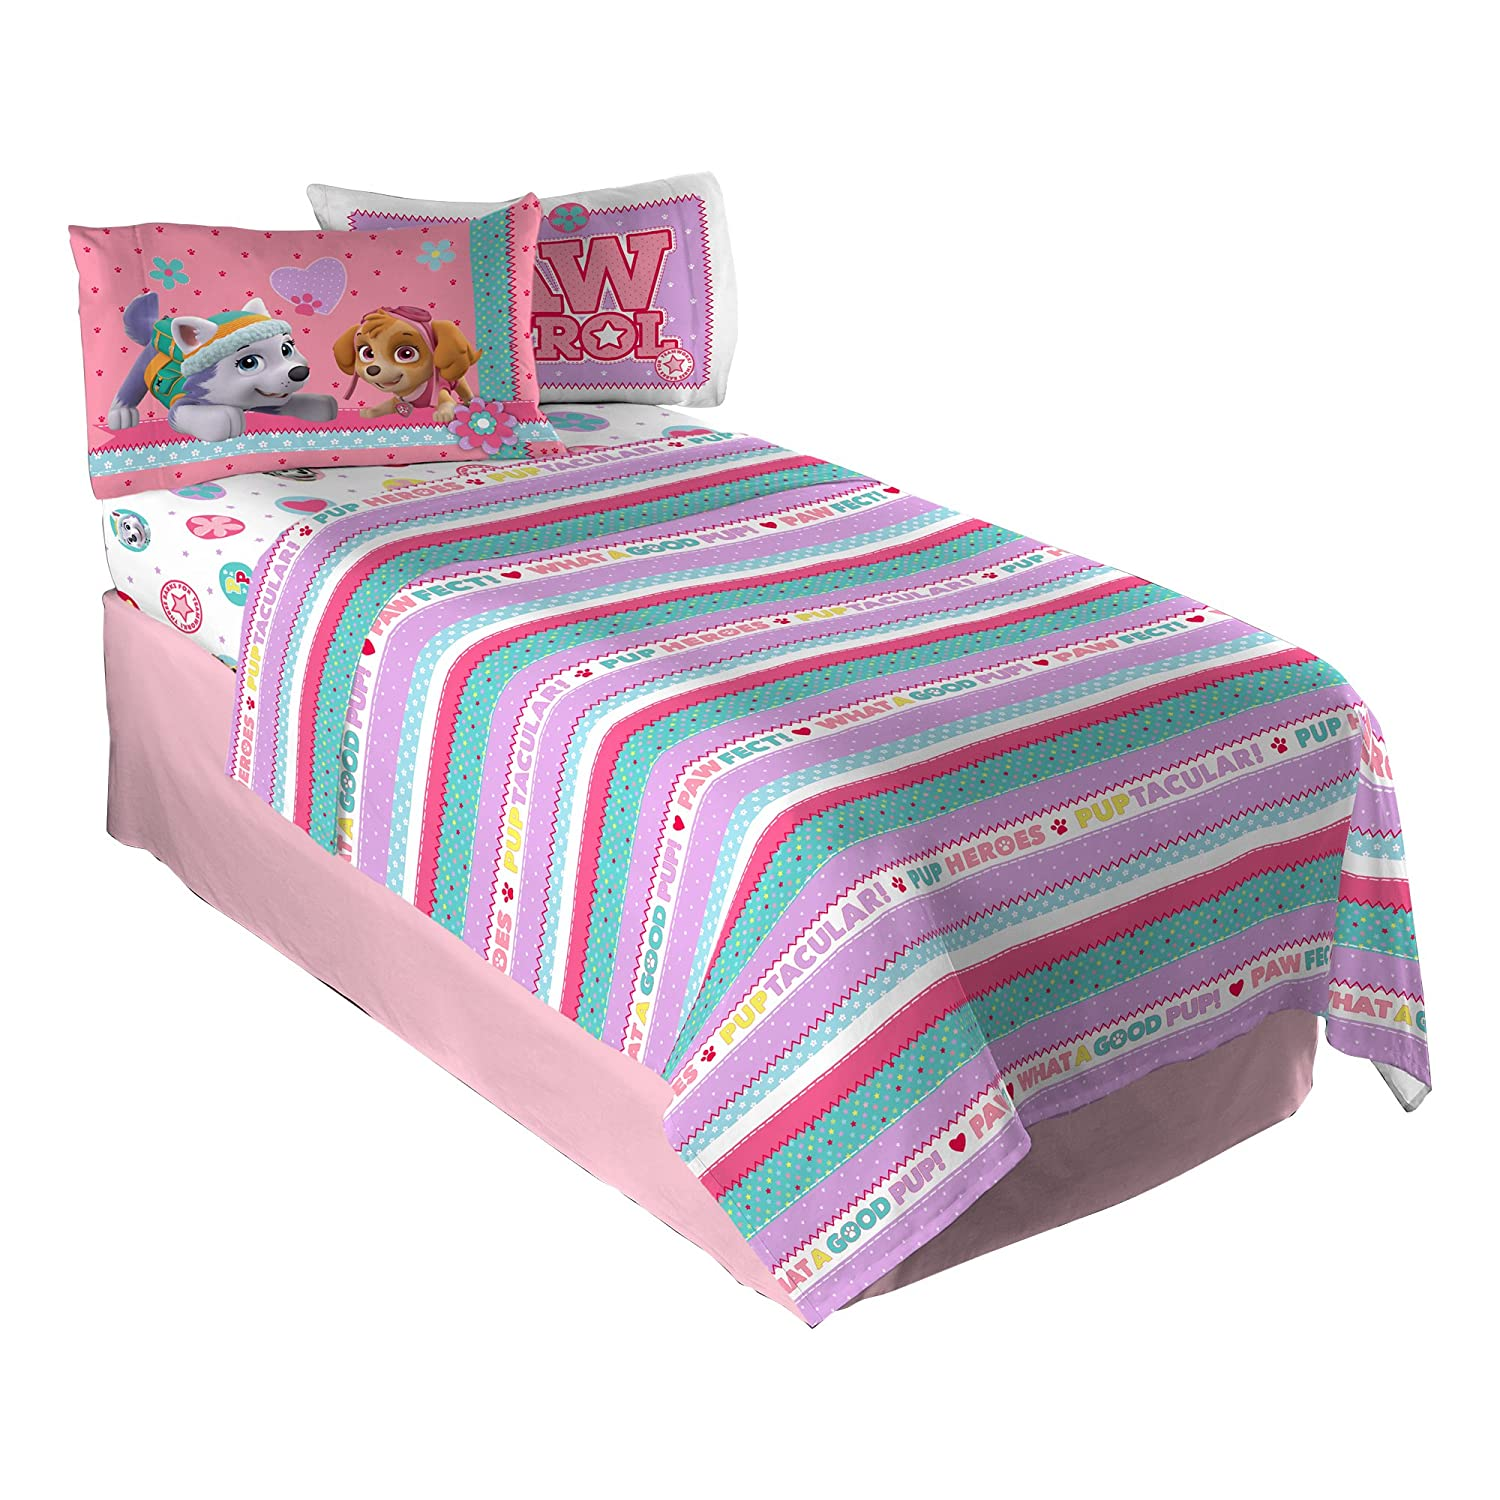 Paw Patrol Girls Twin Sheet Set Kids Bedding Soft 3 Piece